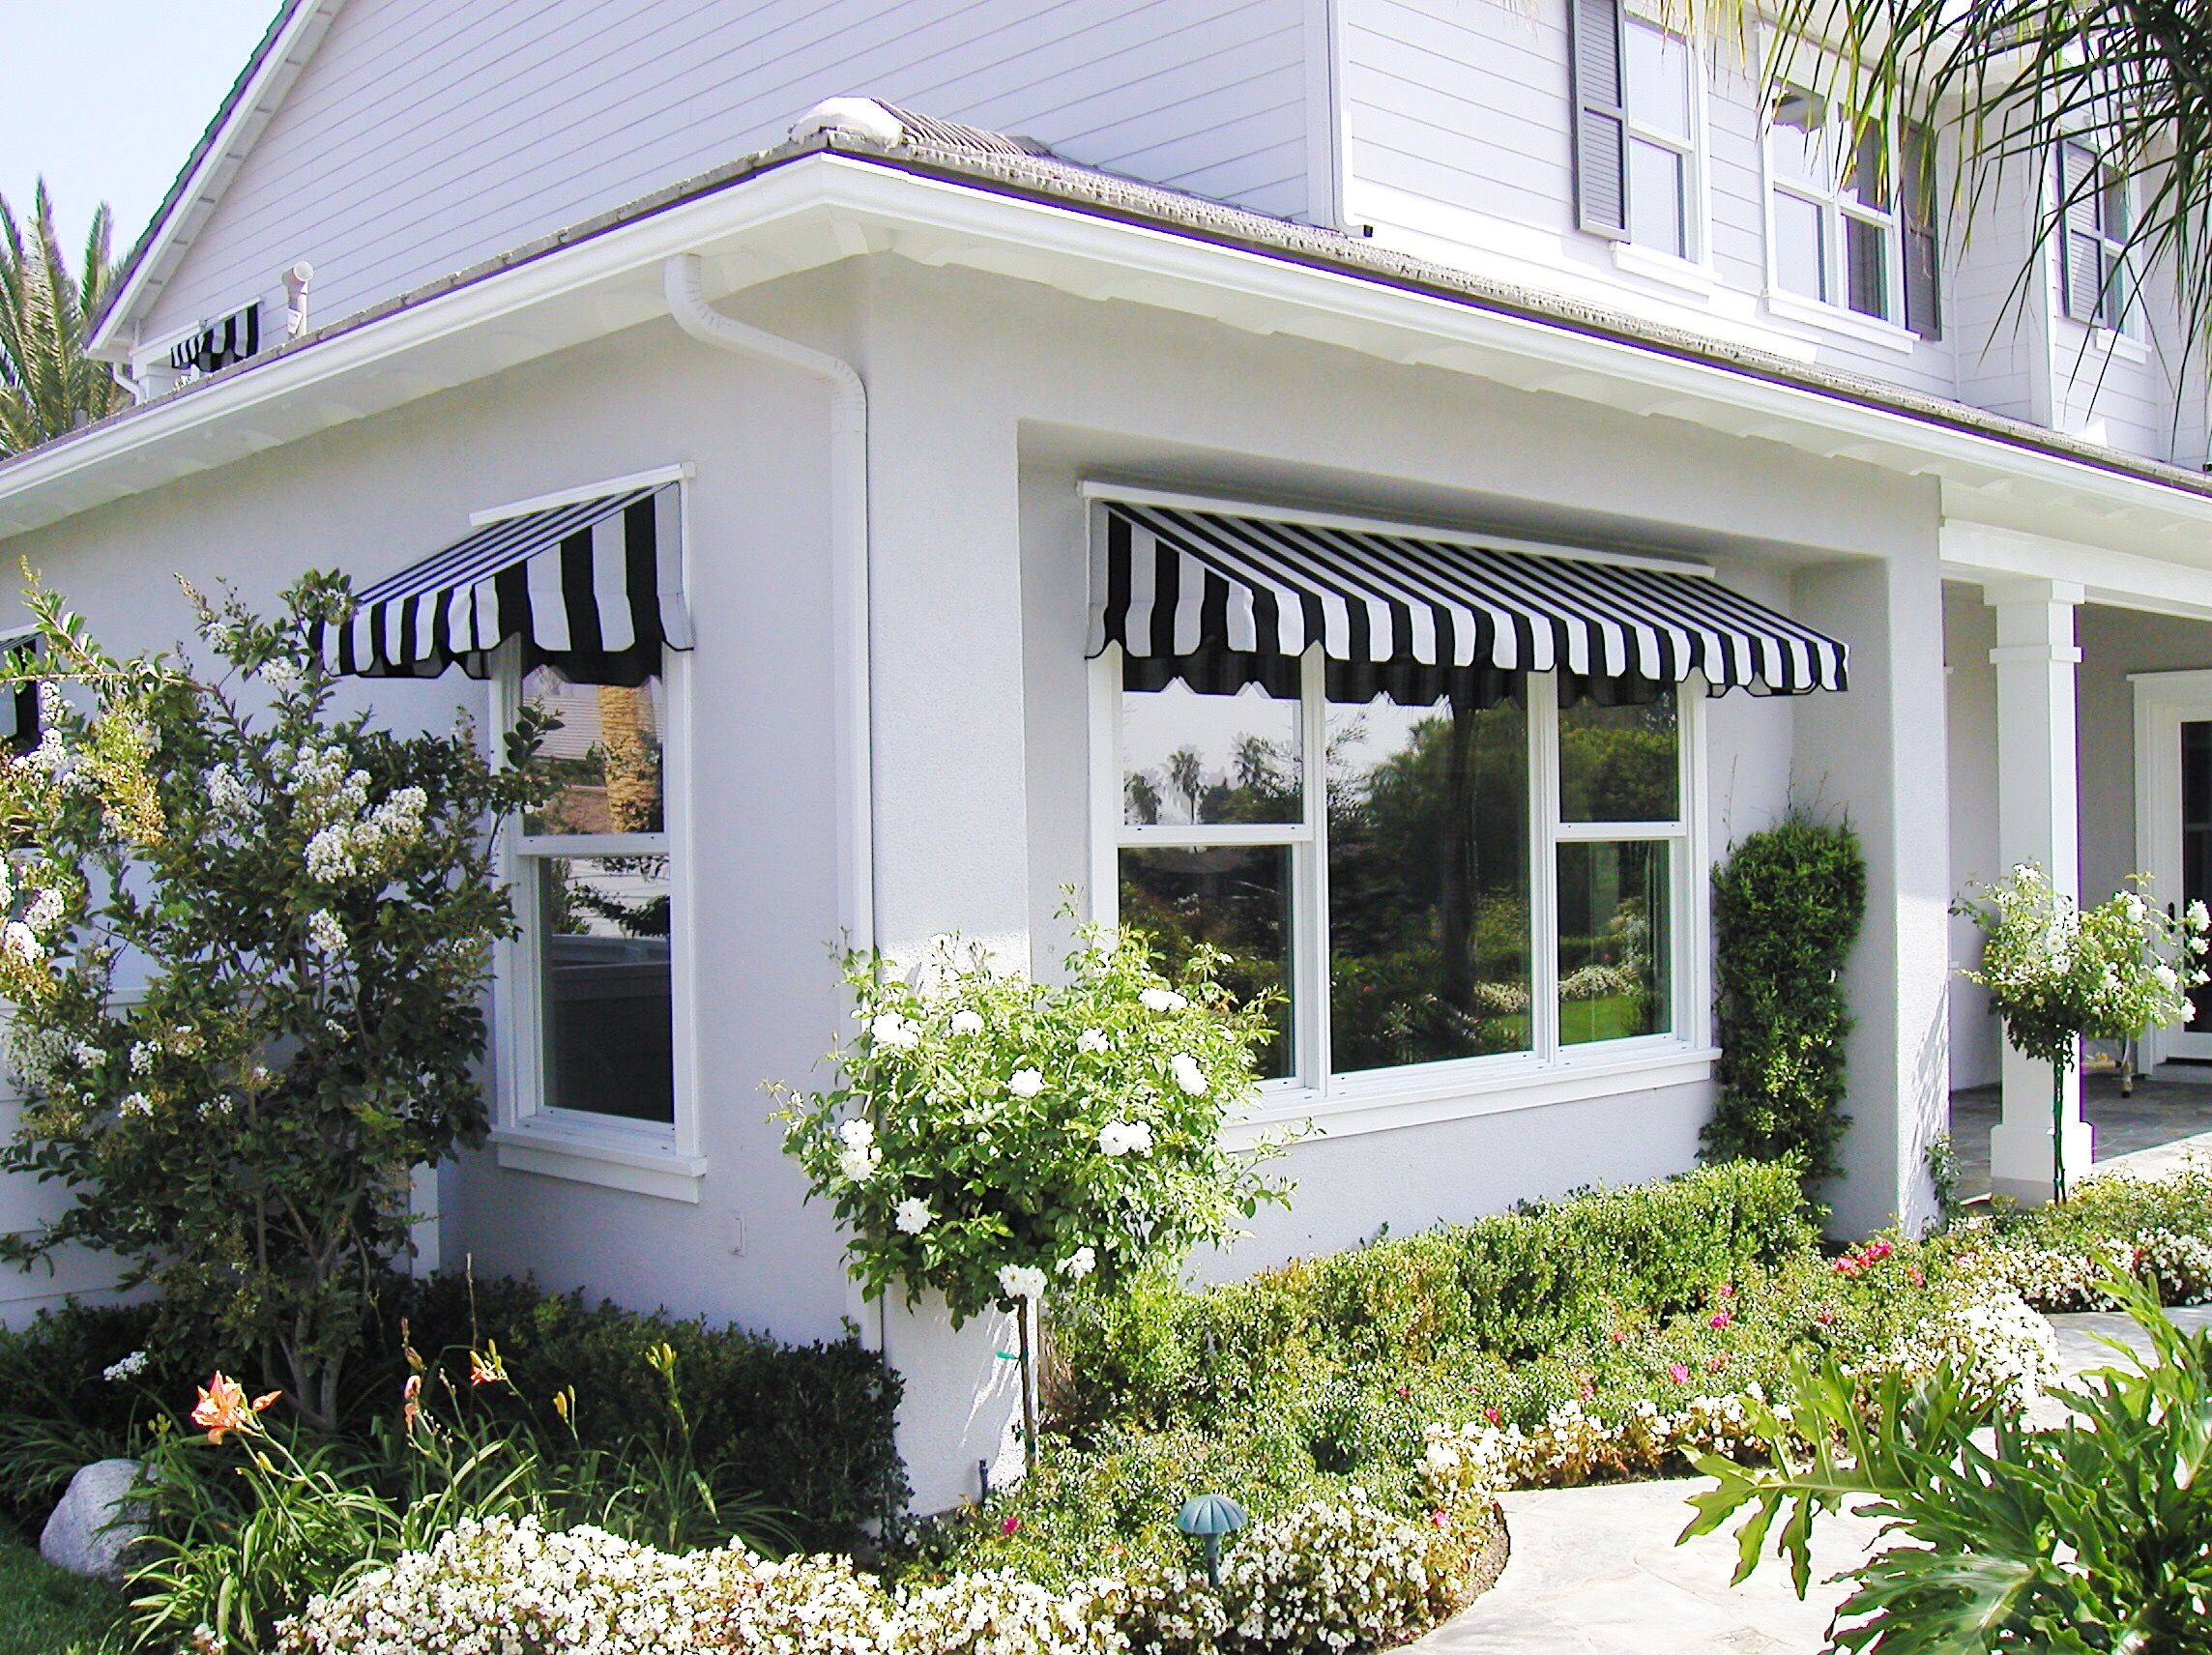 Riviera Style Fixed Awnings Are A Sure Way To Add Character To The Exterior Of Your Home Or Business Here At Classic We Install Awni Anaheim Hills Beach House Outdoor Decor